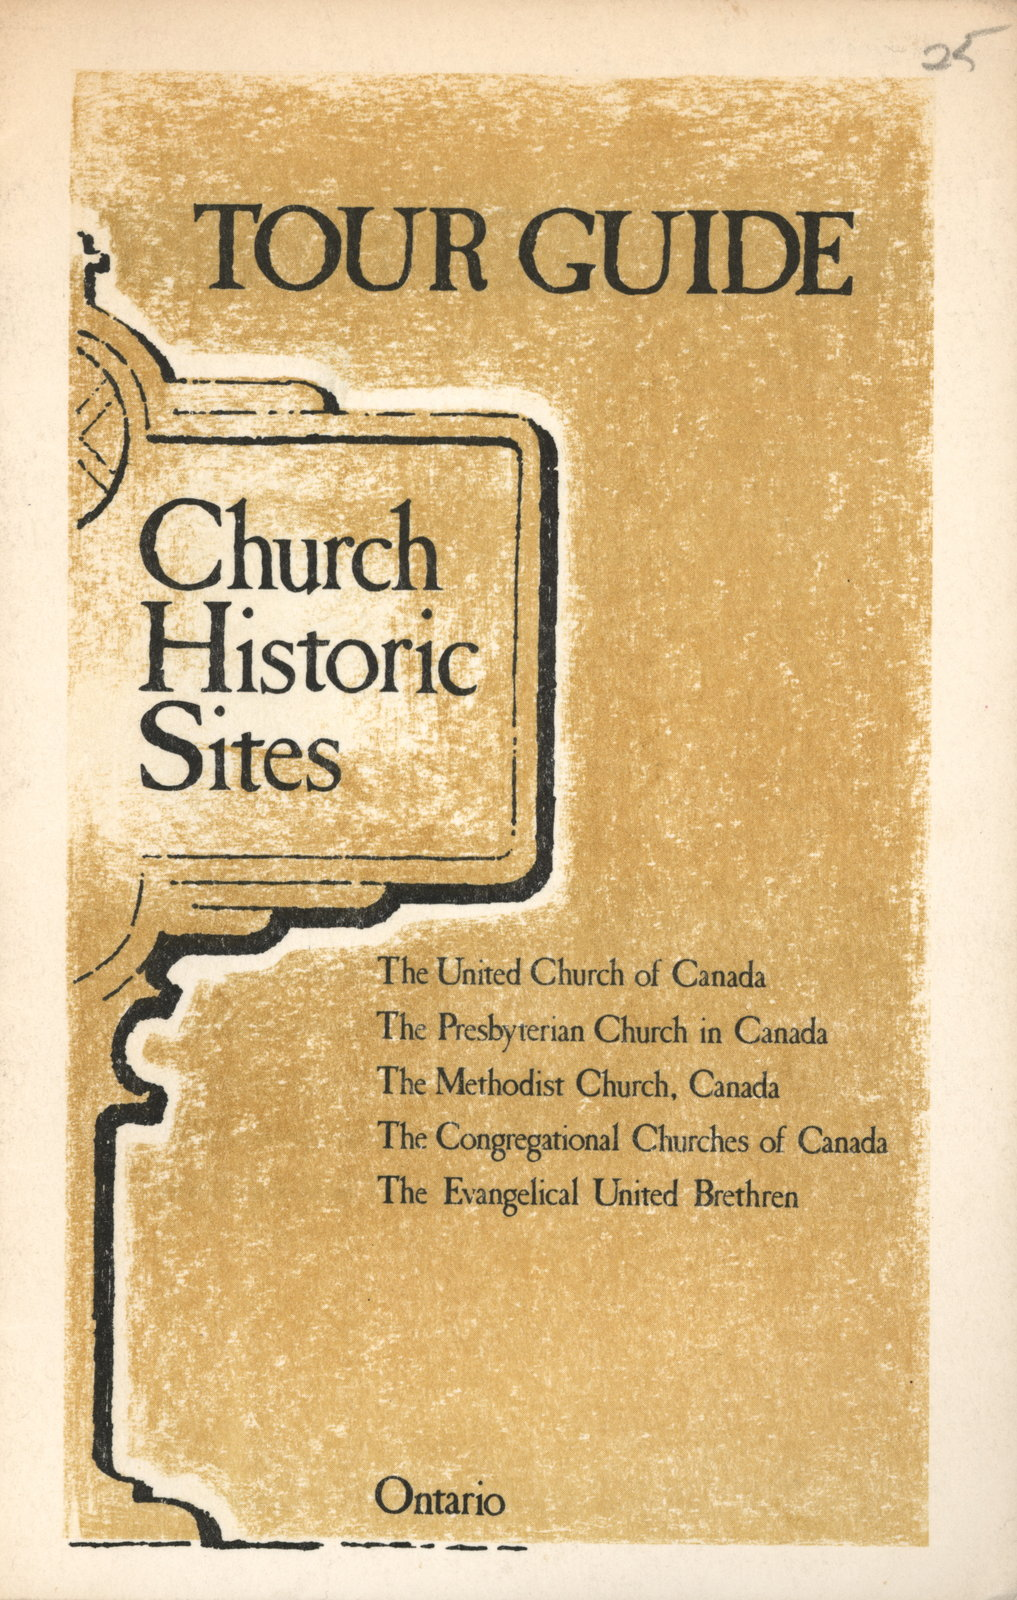 Tour Guide of Church Historic Sites